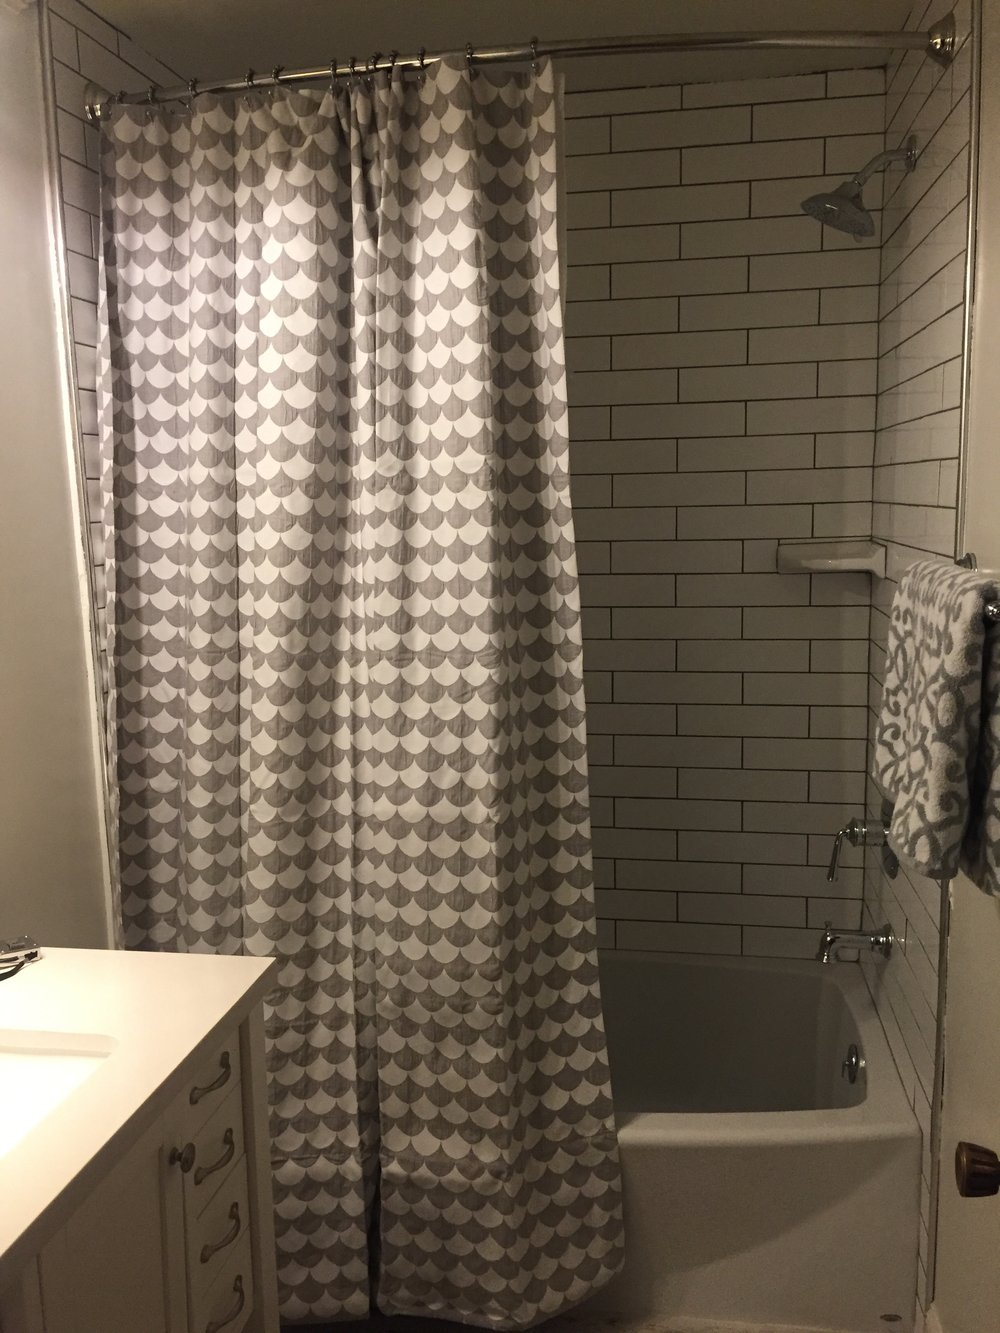 HALL BATH: Extra-Long Shower Curtain